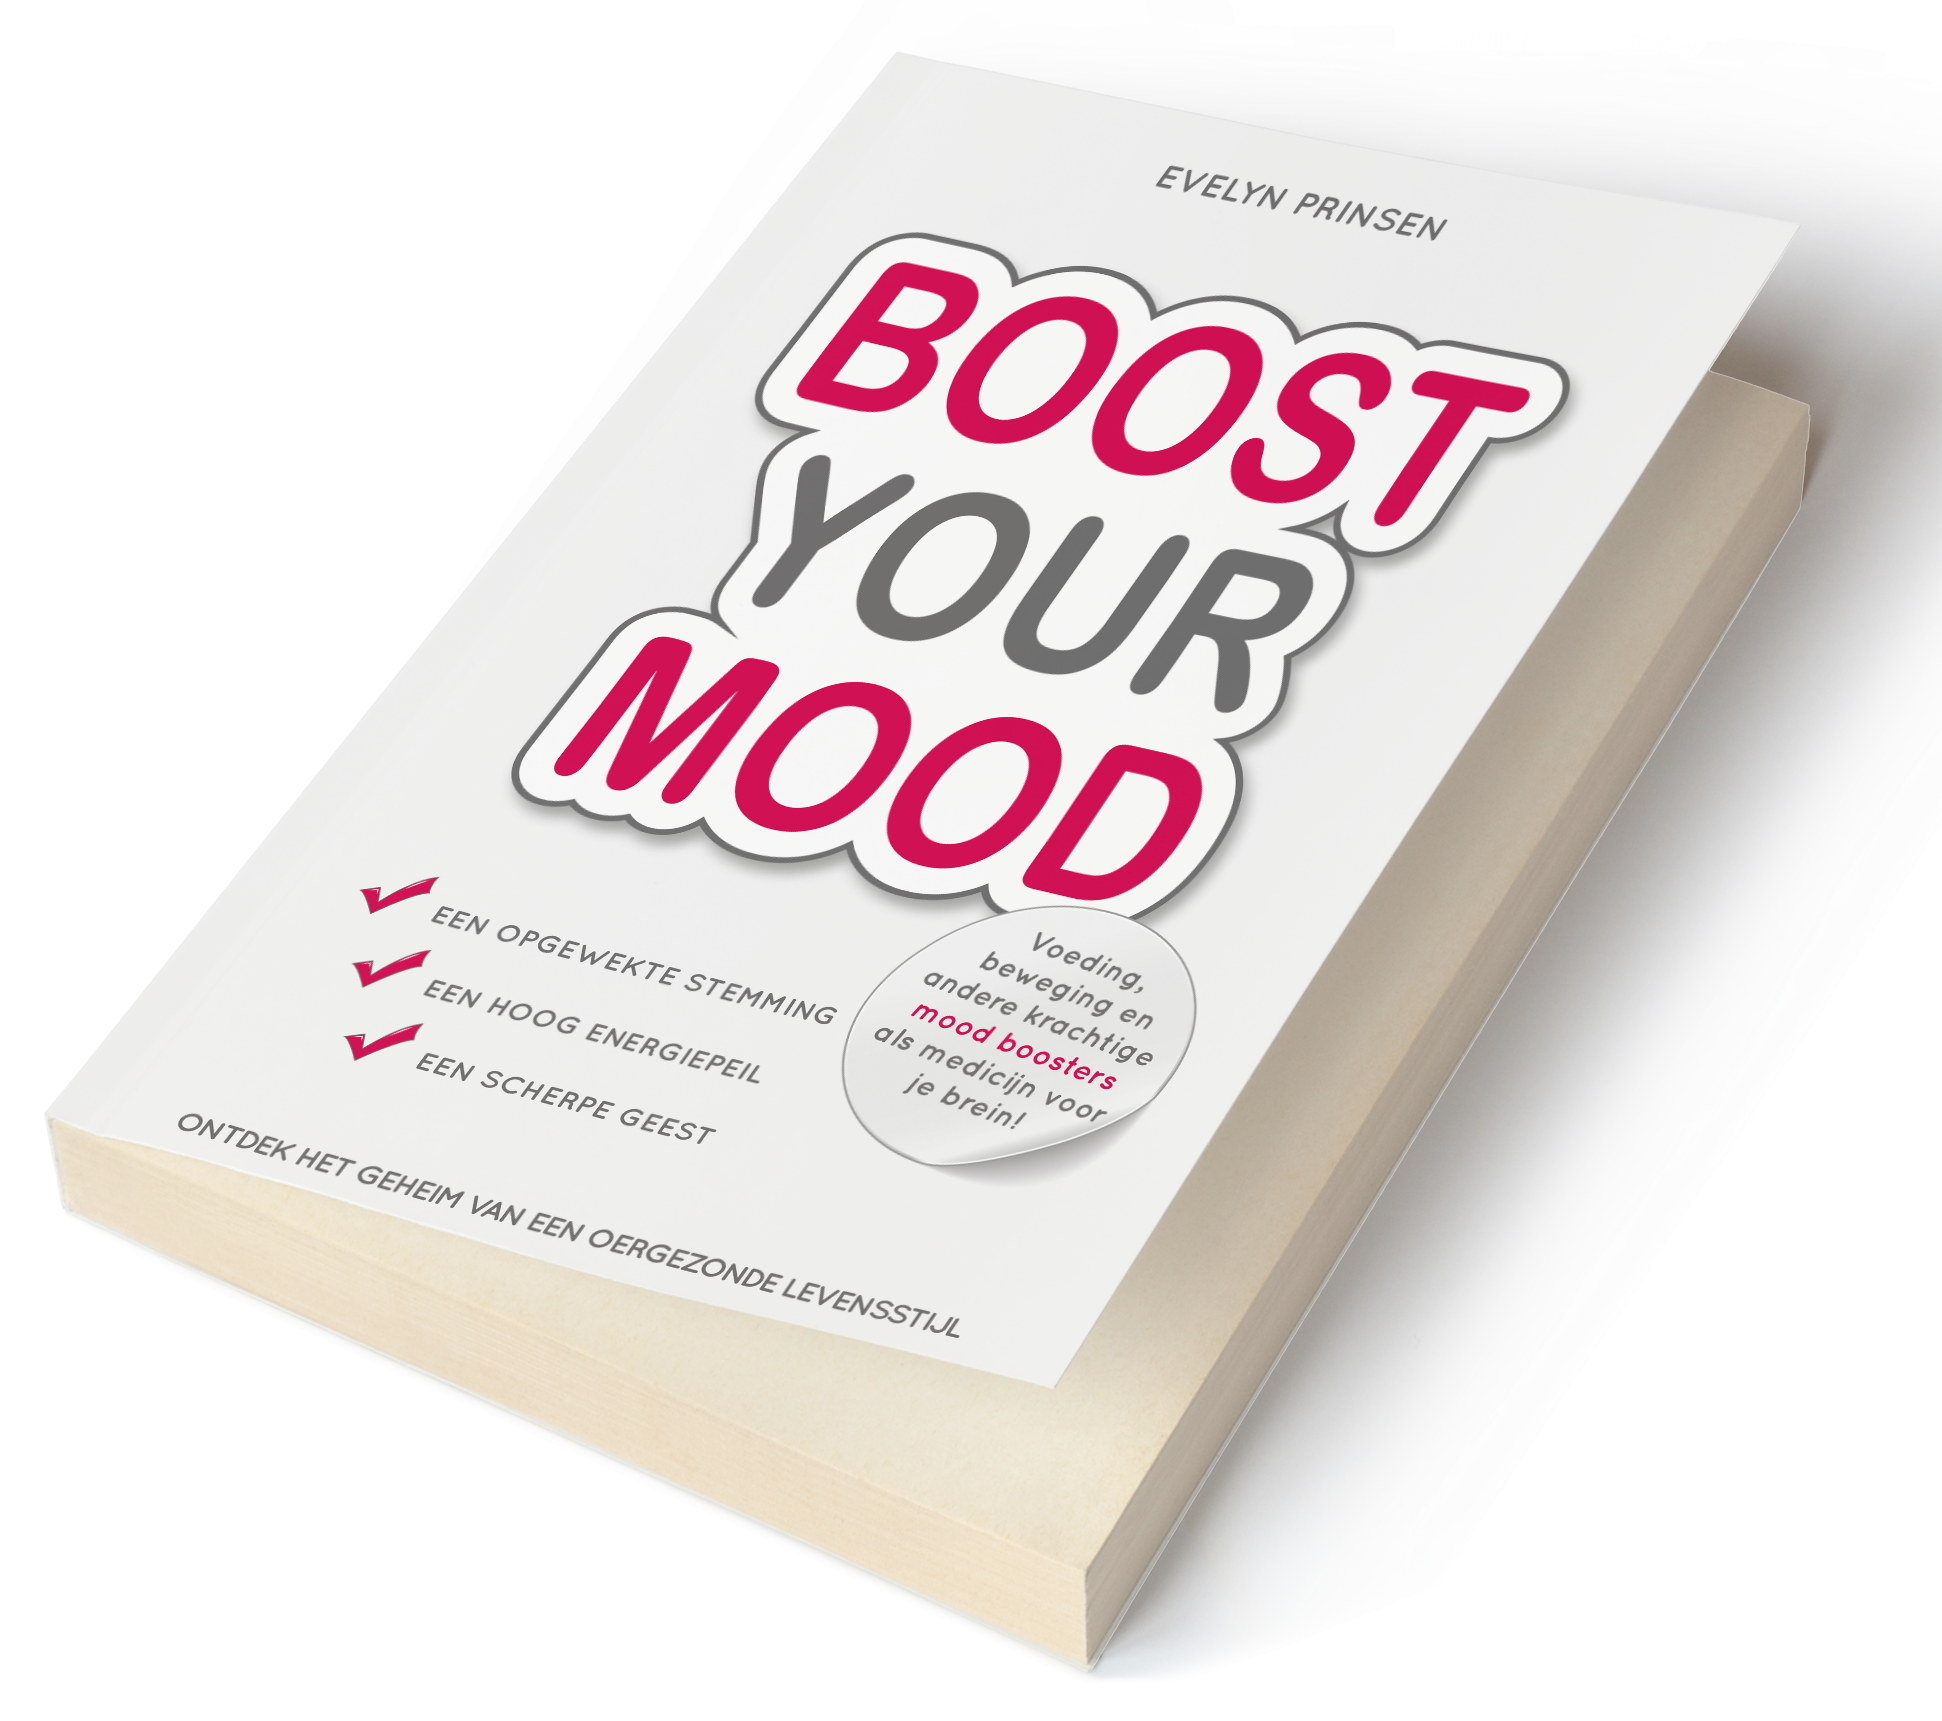 boost-your-mood besneden